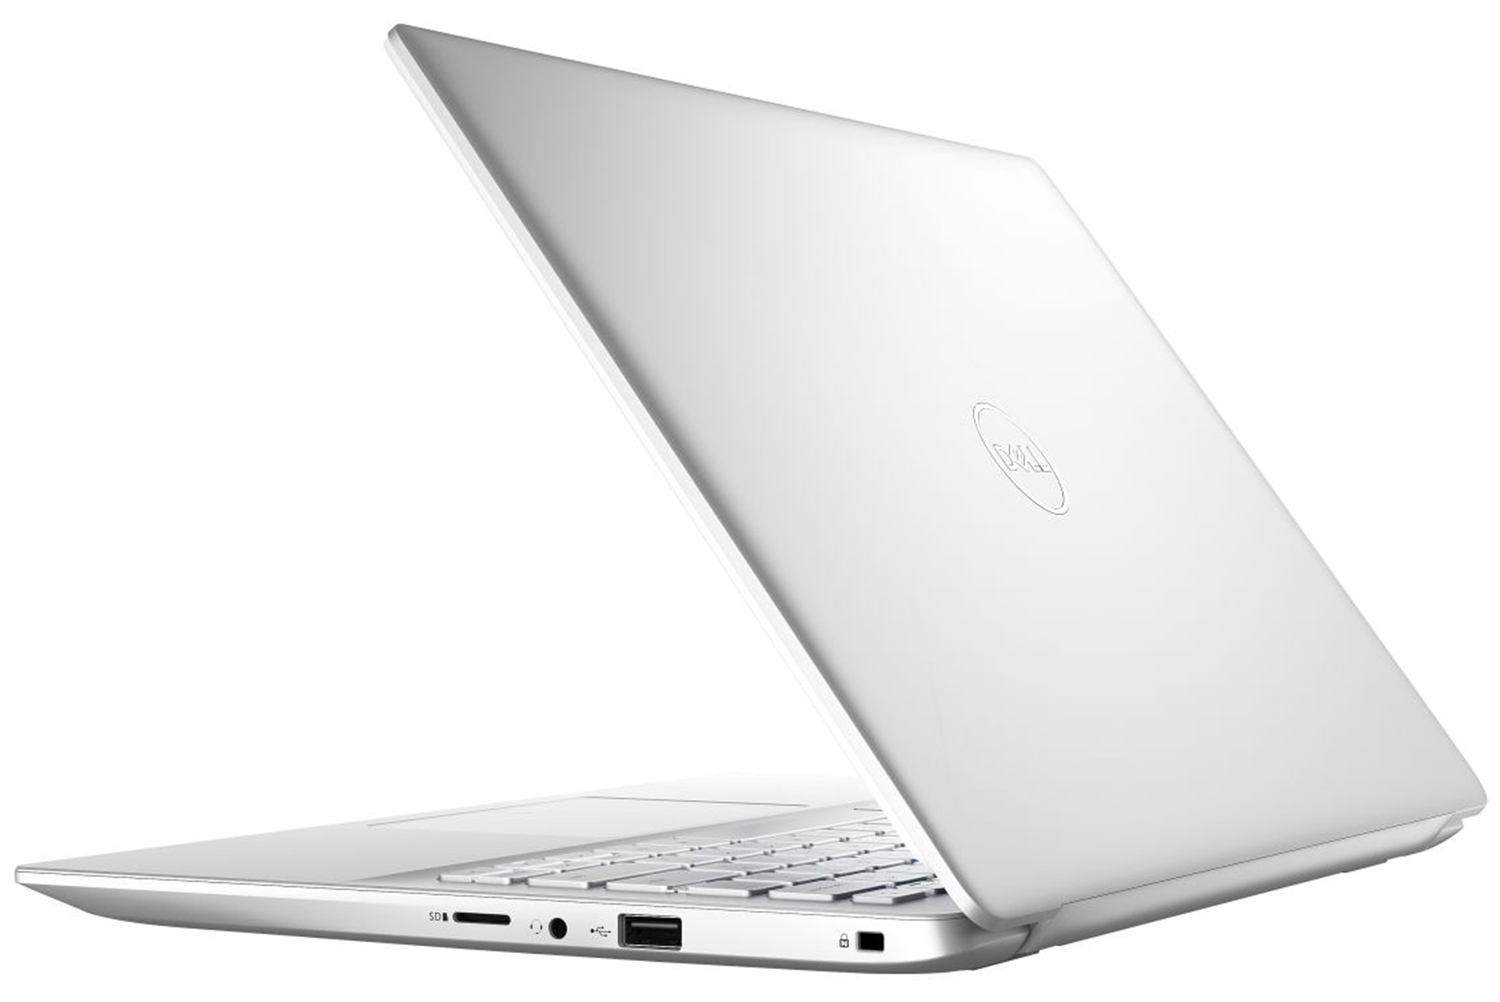 Dell Inspiron 14 5490 Review Two Workdays On A Single Battery Charge